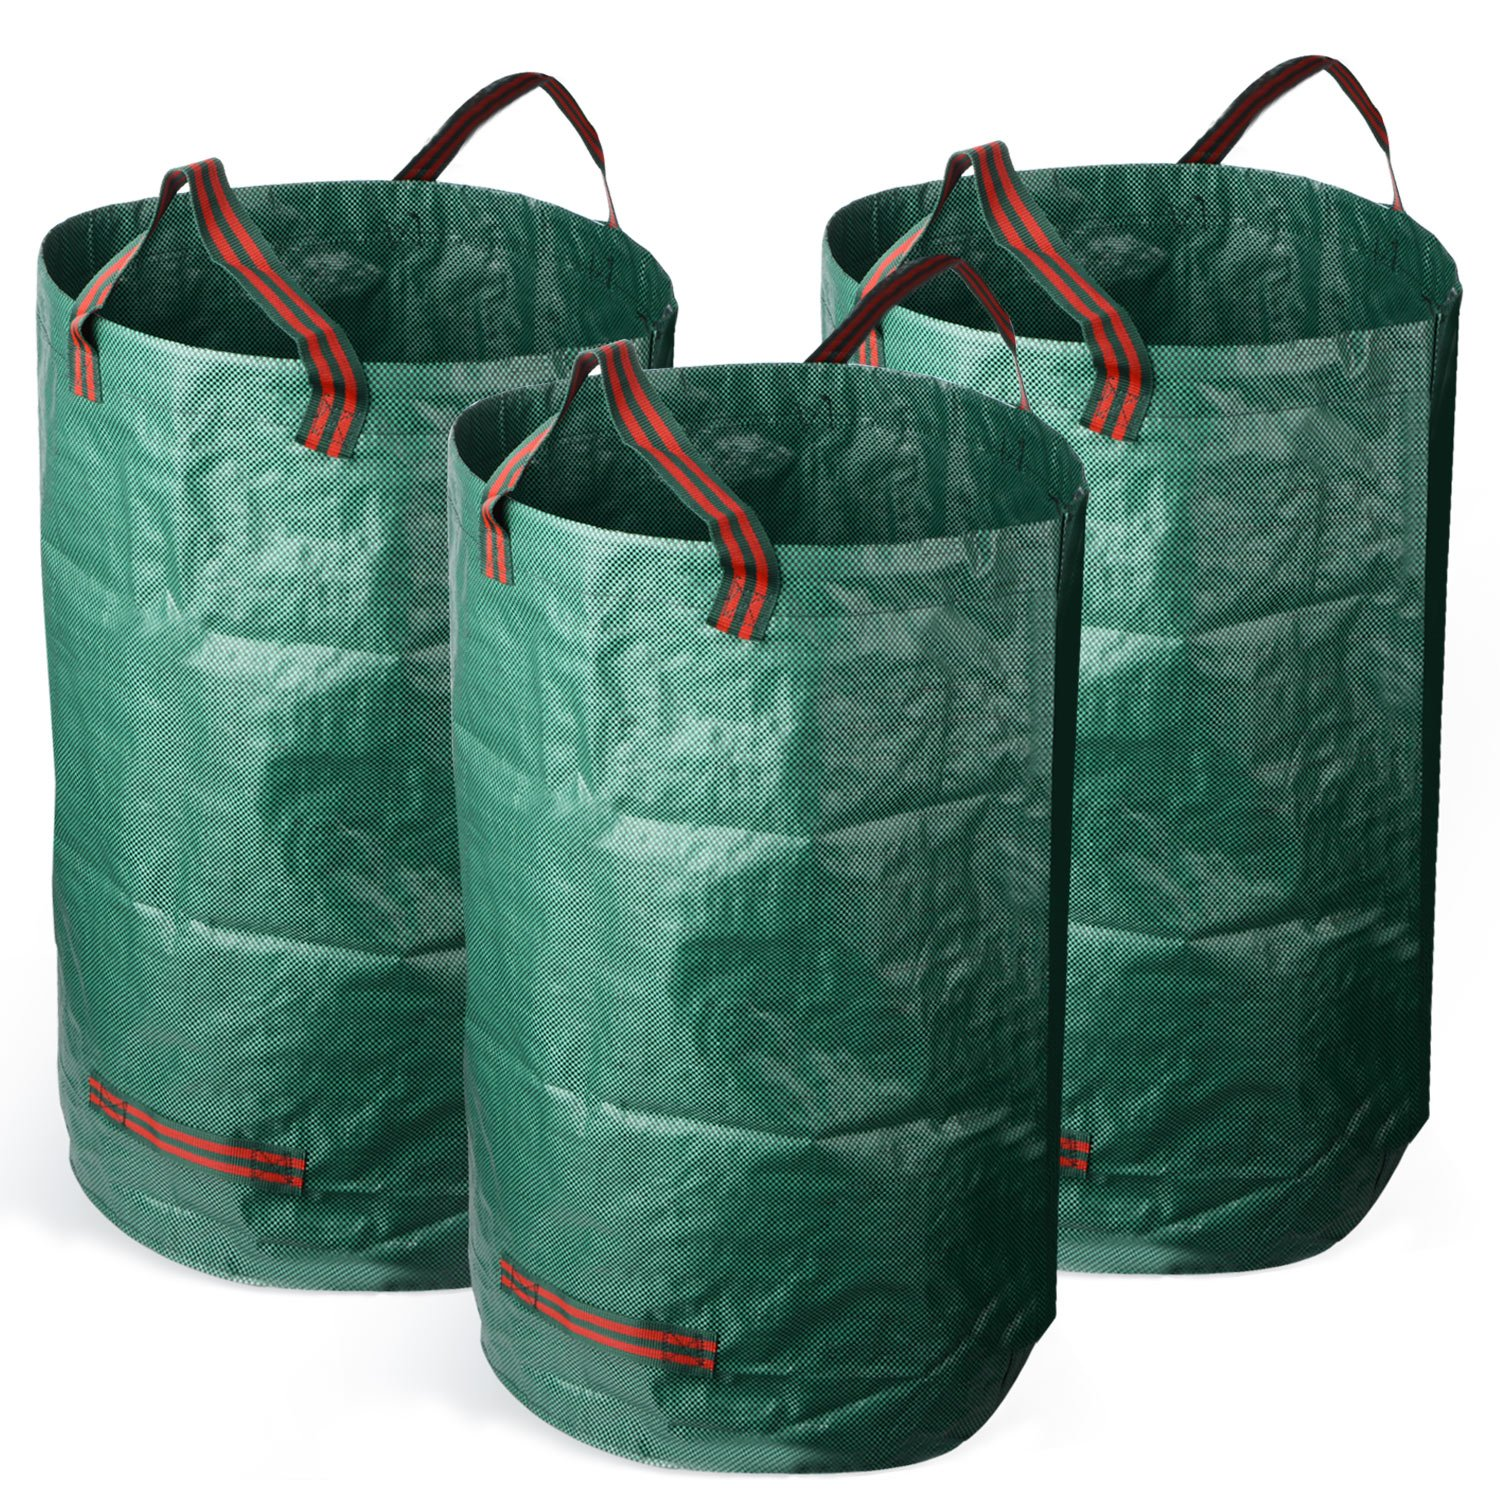 ASSR 32 Gallons Garden Waste Bag, Reusable Yard Bags Gardening Lawn Leaf Bags (3 Pack) by ASSR